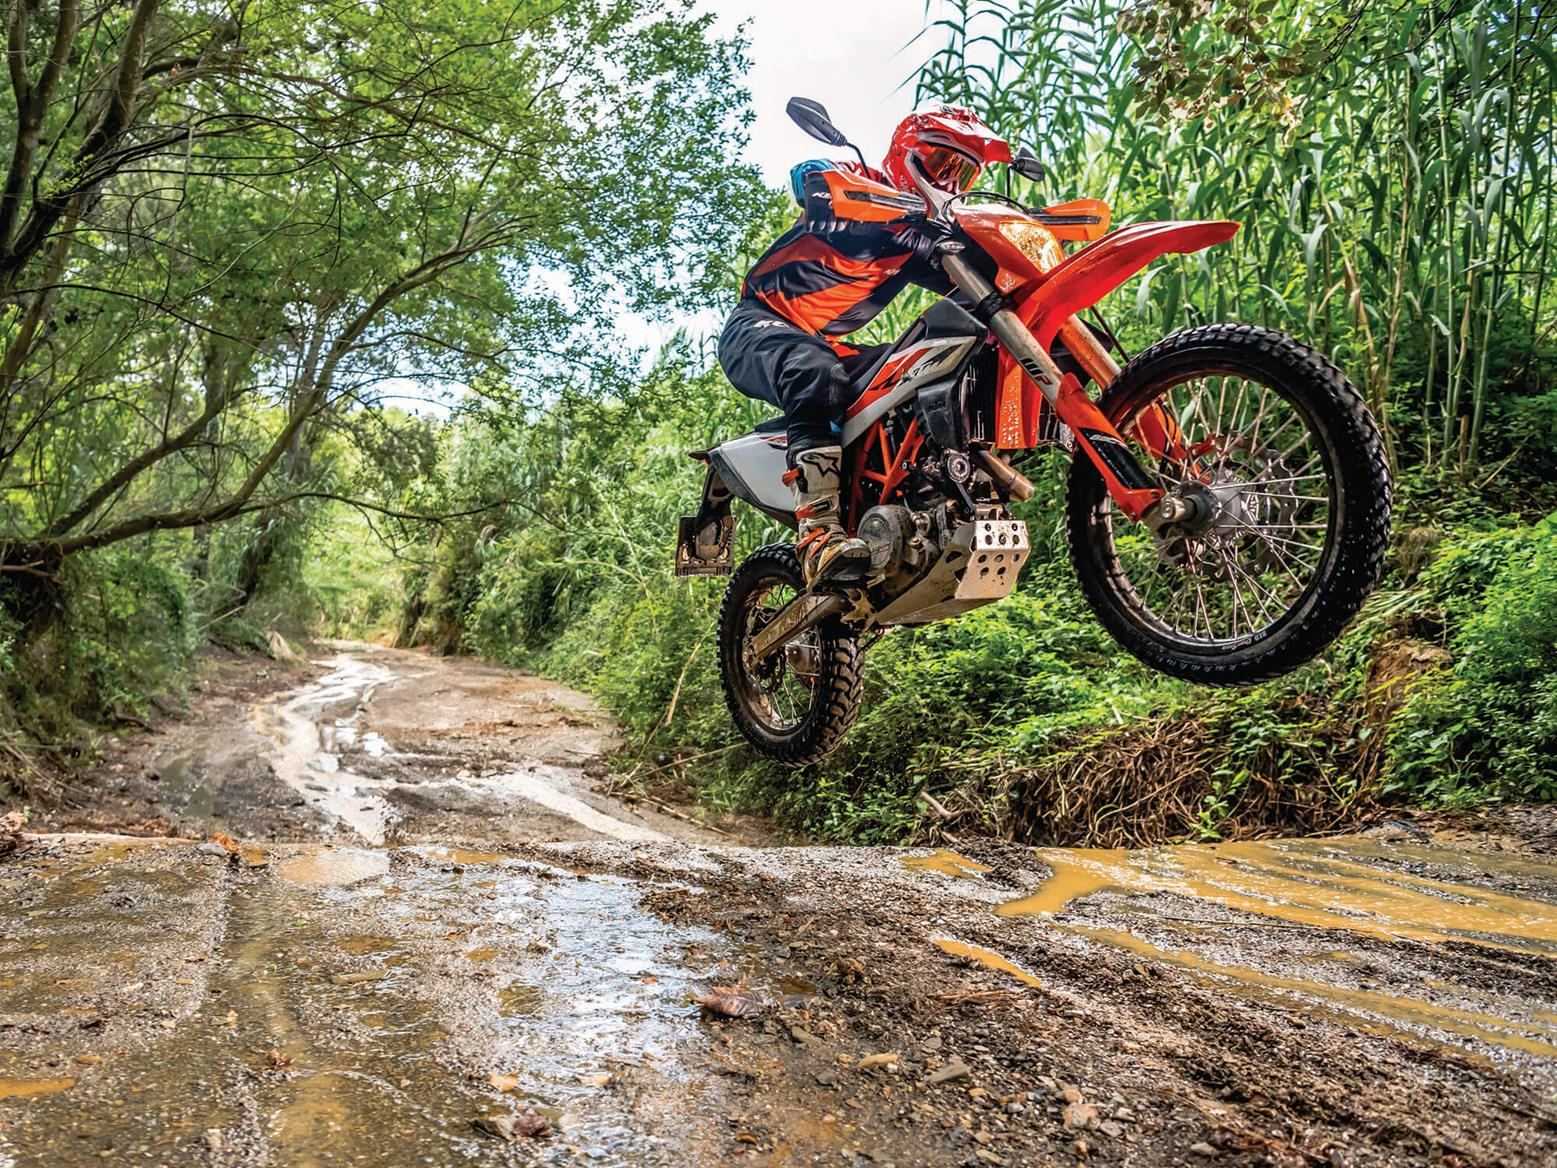 Get down and dirty today with MCN's best off-road bikes